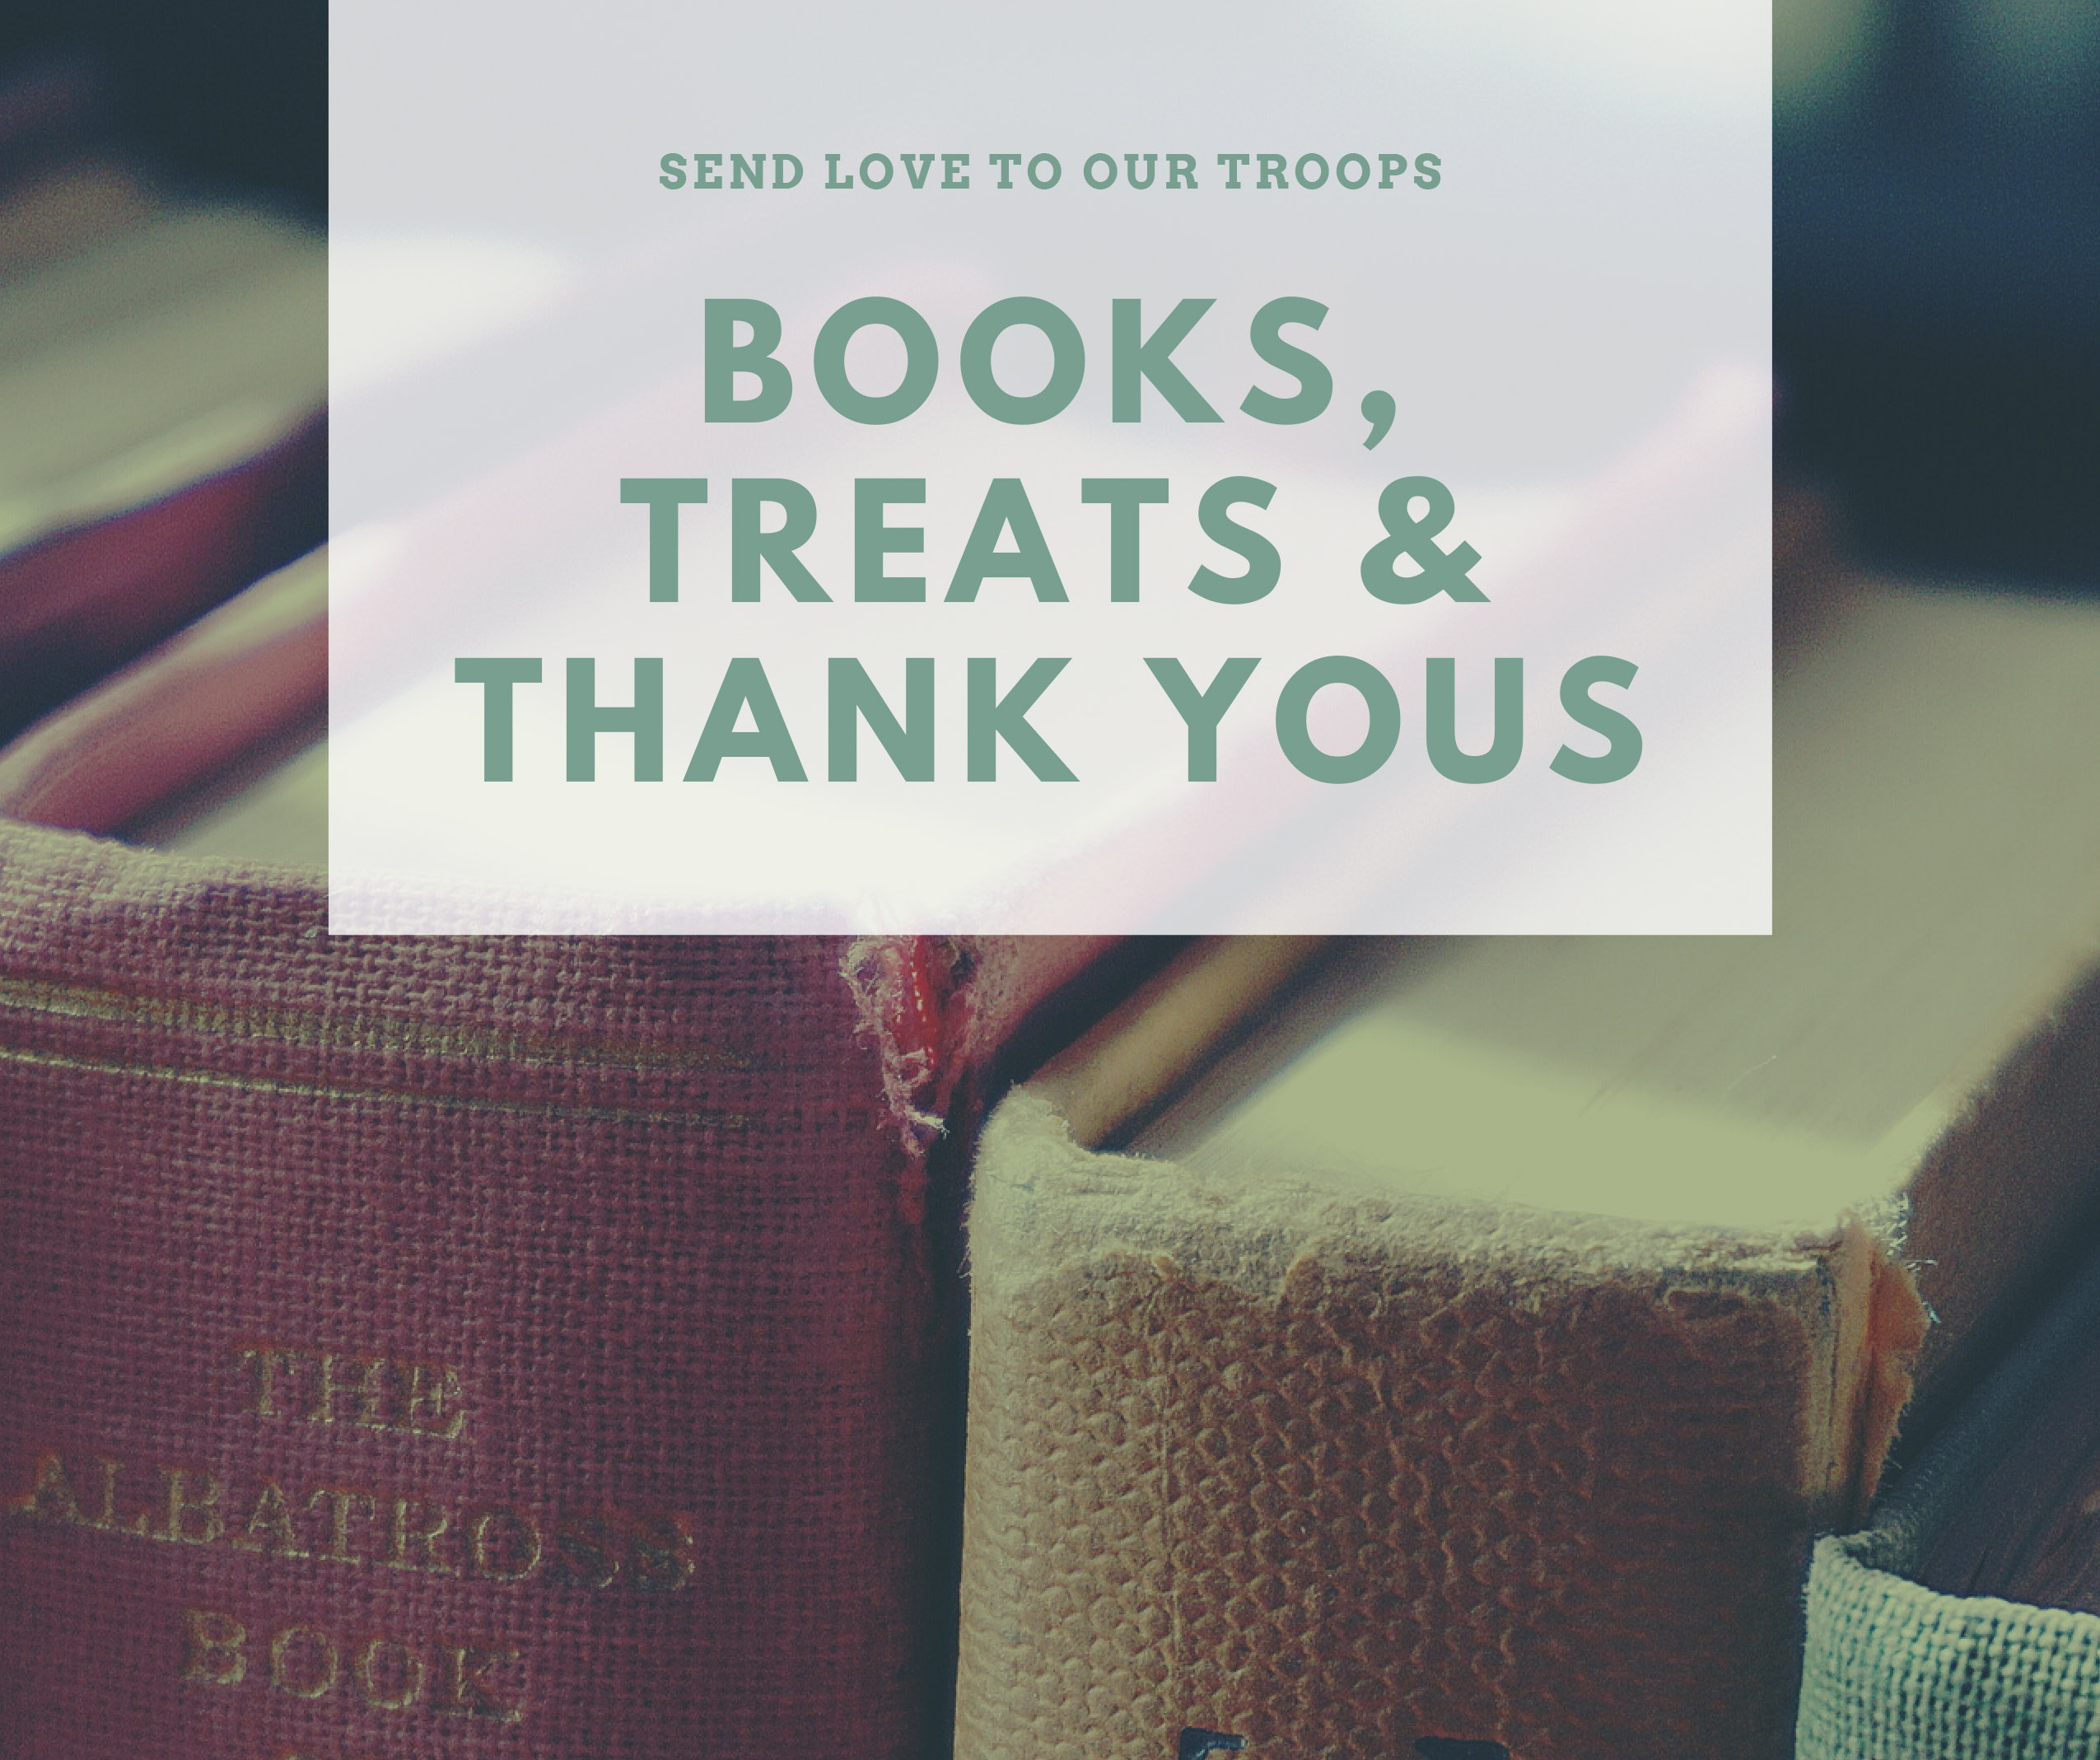 Photo of books with text reading Send Love to our Troops, BOOKS TREATS & THANK YOUS